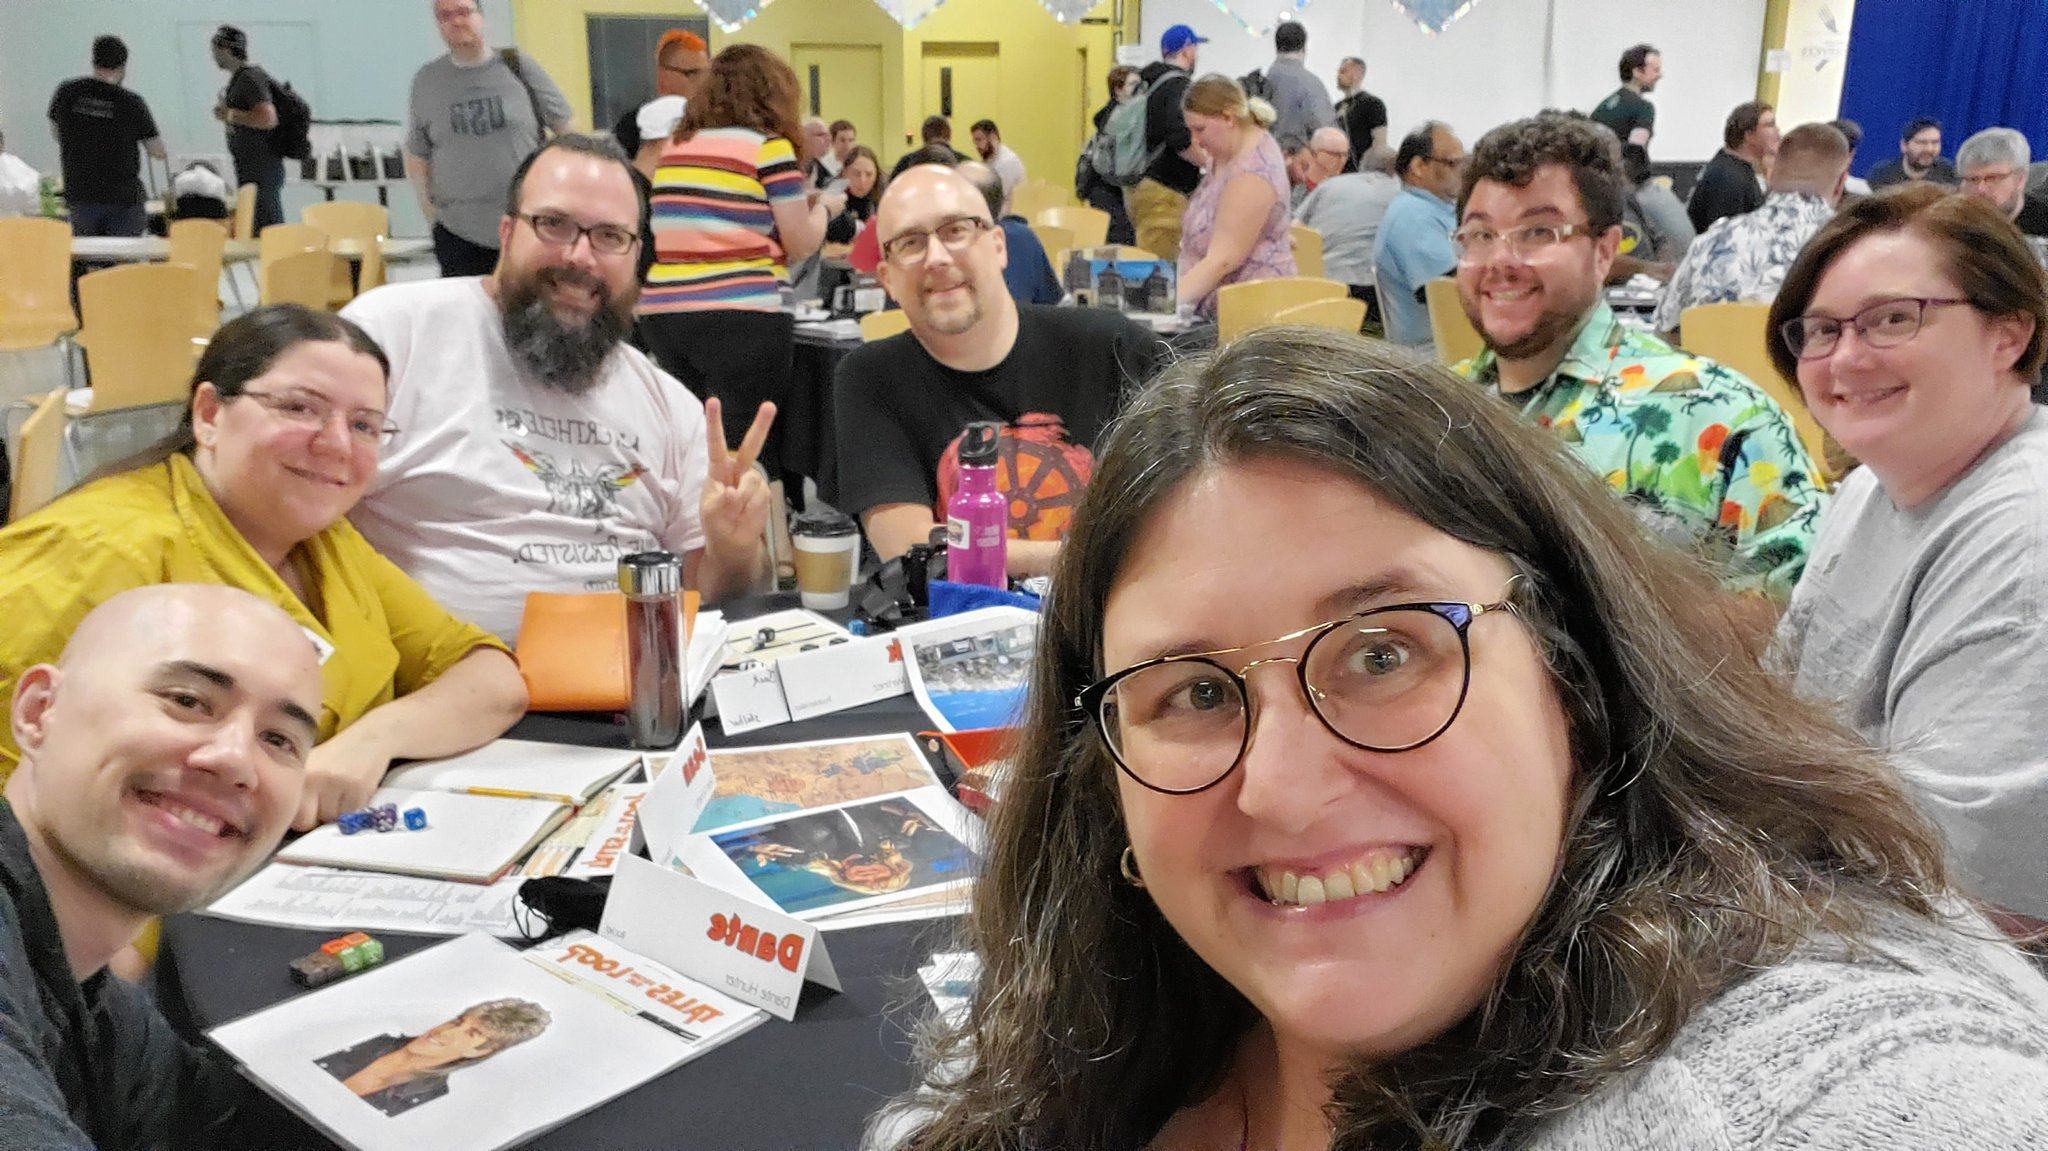 #tableselfie for my Tales from the Loop game. Fantastic group. They all nailed their characters and tp'd the bad guy's house. https://t.co/UgXHVKlK54